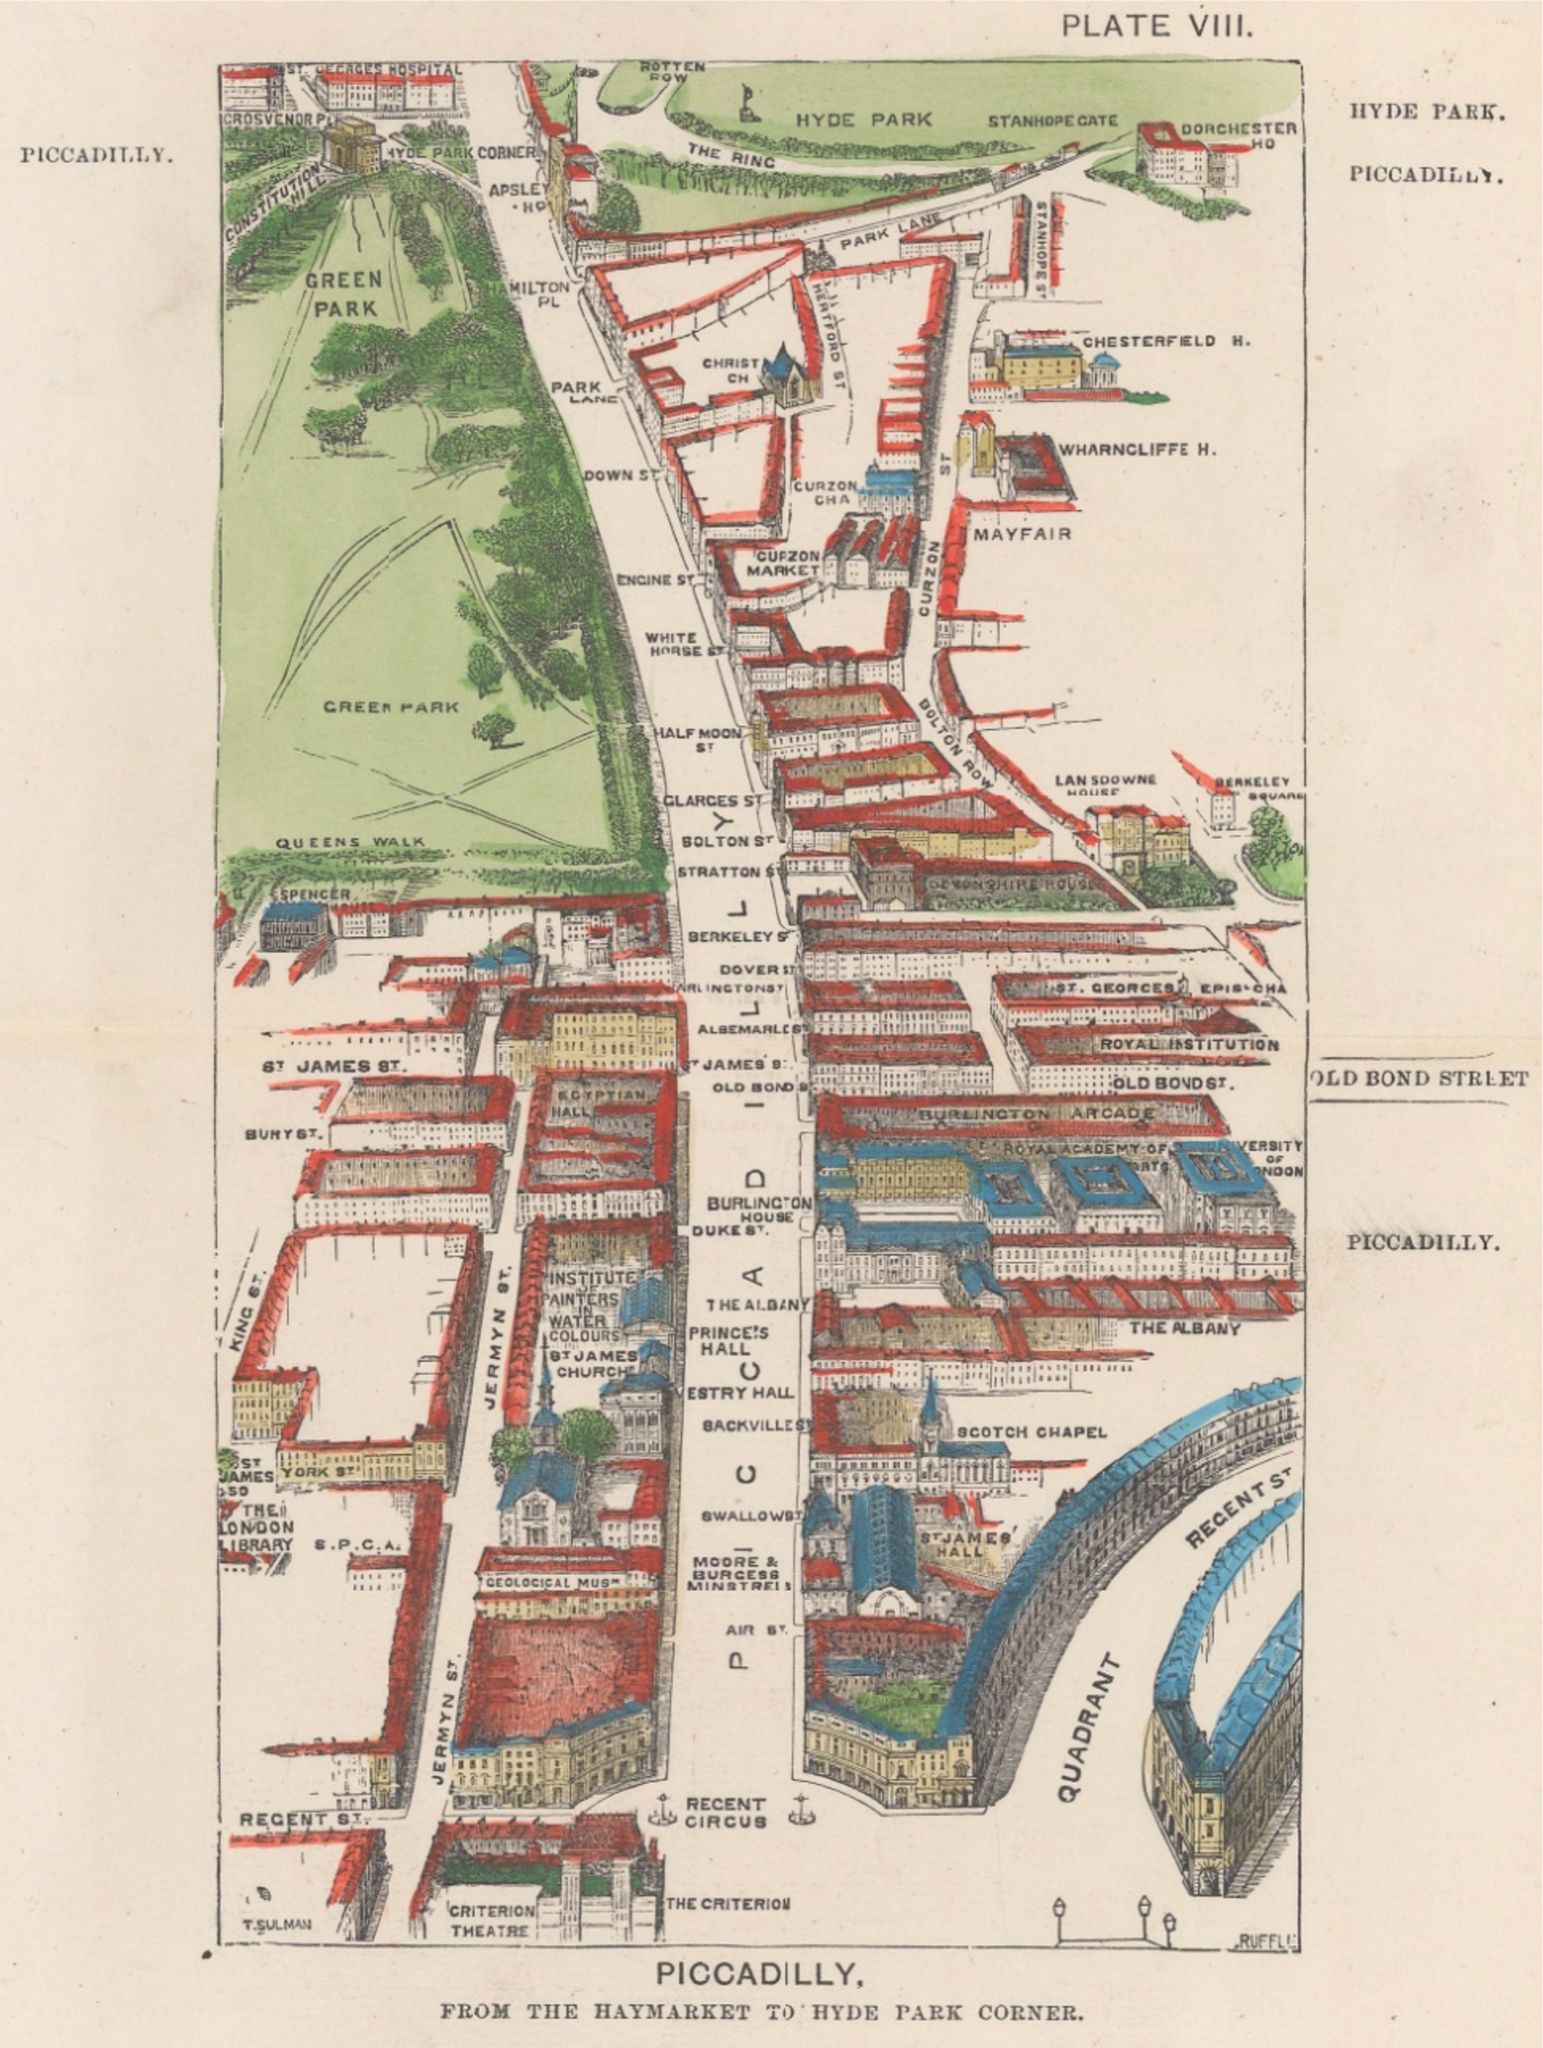 Birds Eye View Map of Piccadilly illustrating Mayfair by Engraver Thomas Sulman from 1880.